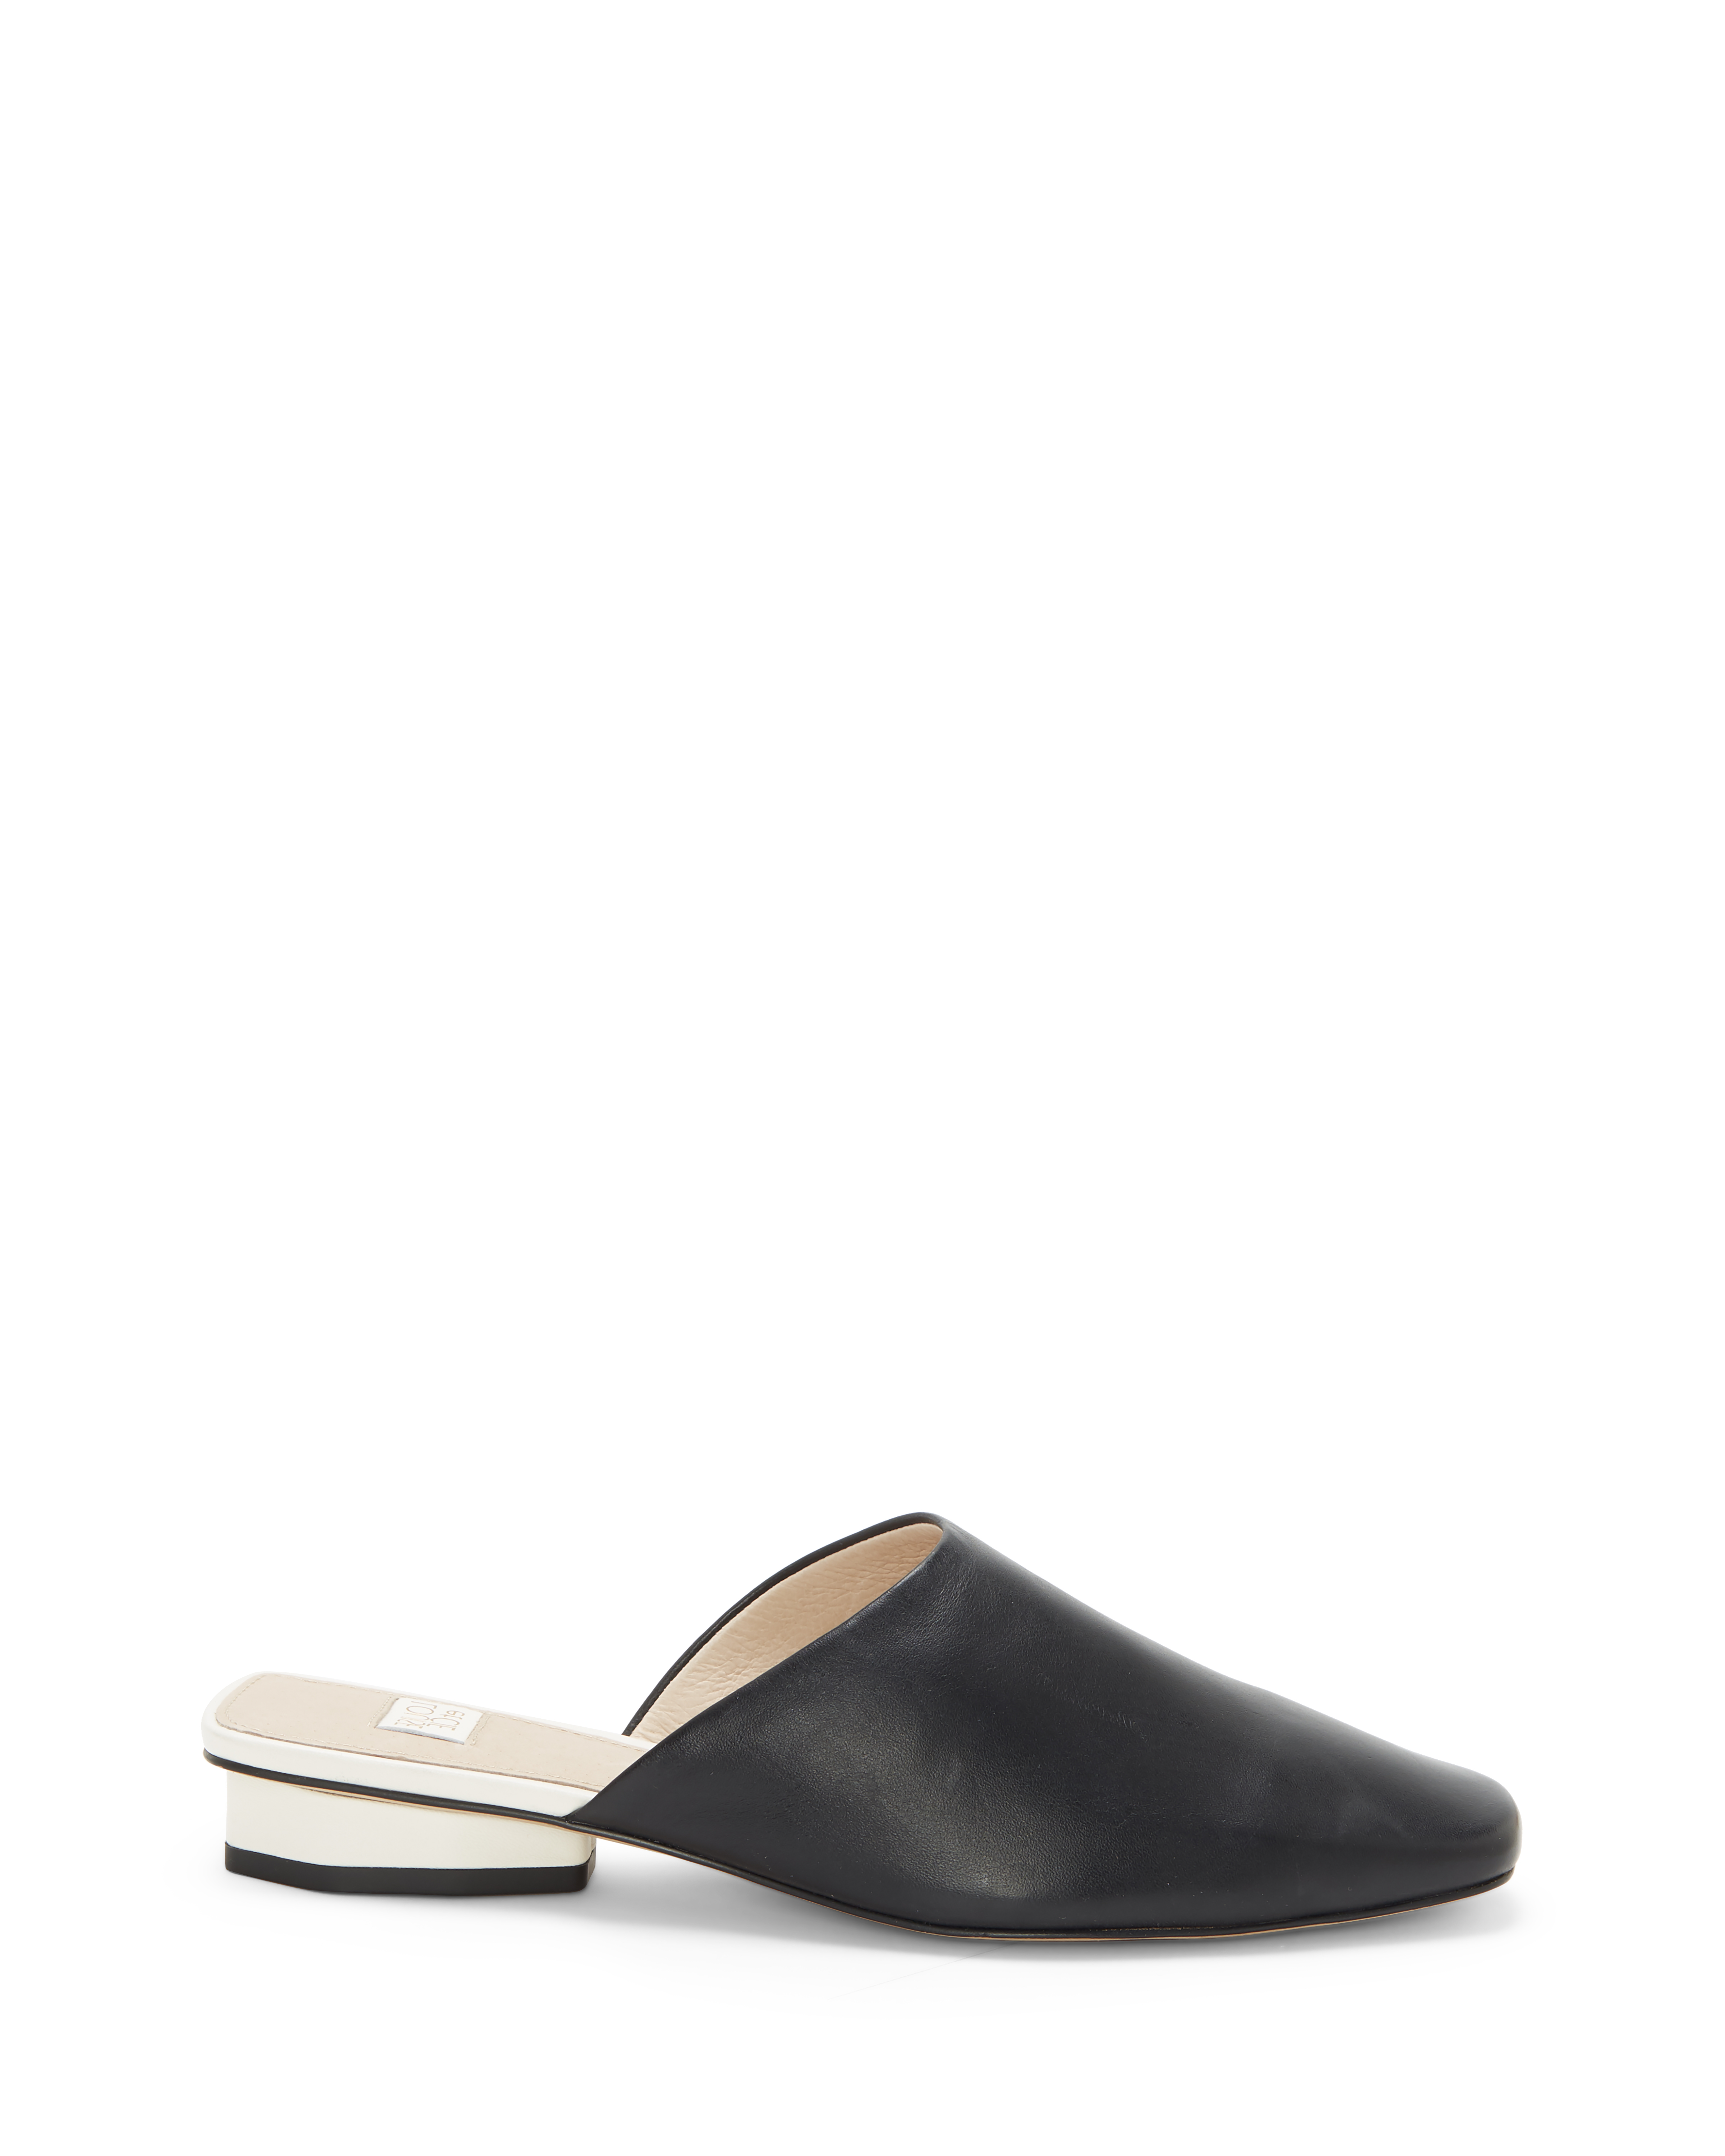 Louise Et Cie Women's Coolia Square Toe Mules Shoes Size 5.5 Silky Leather Black